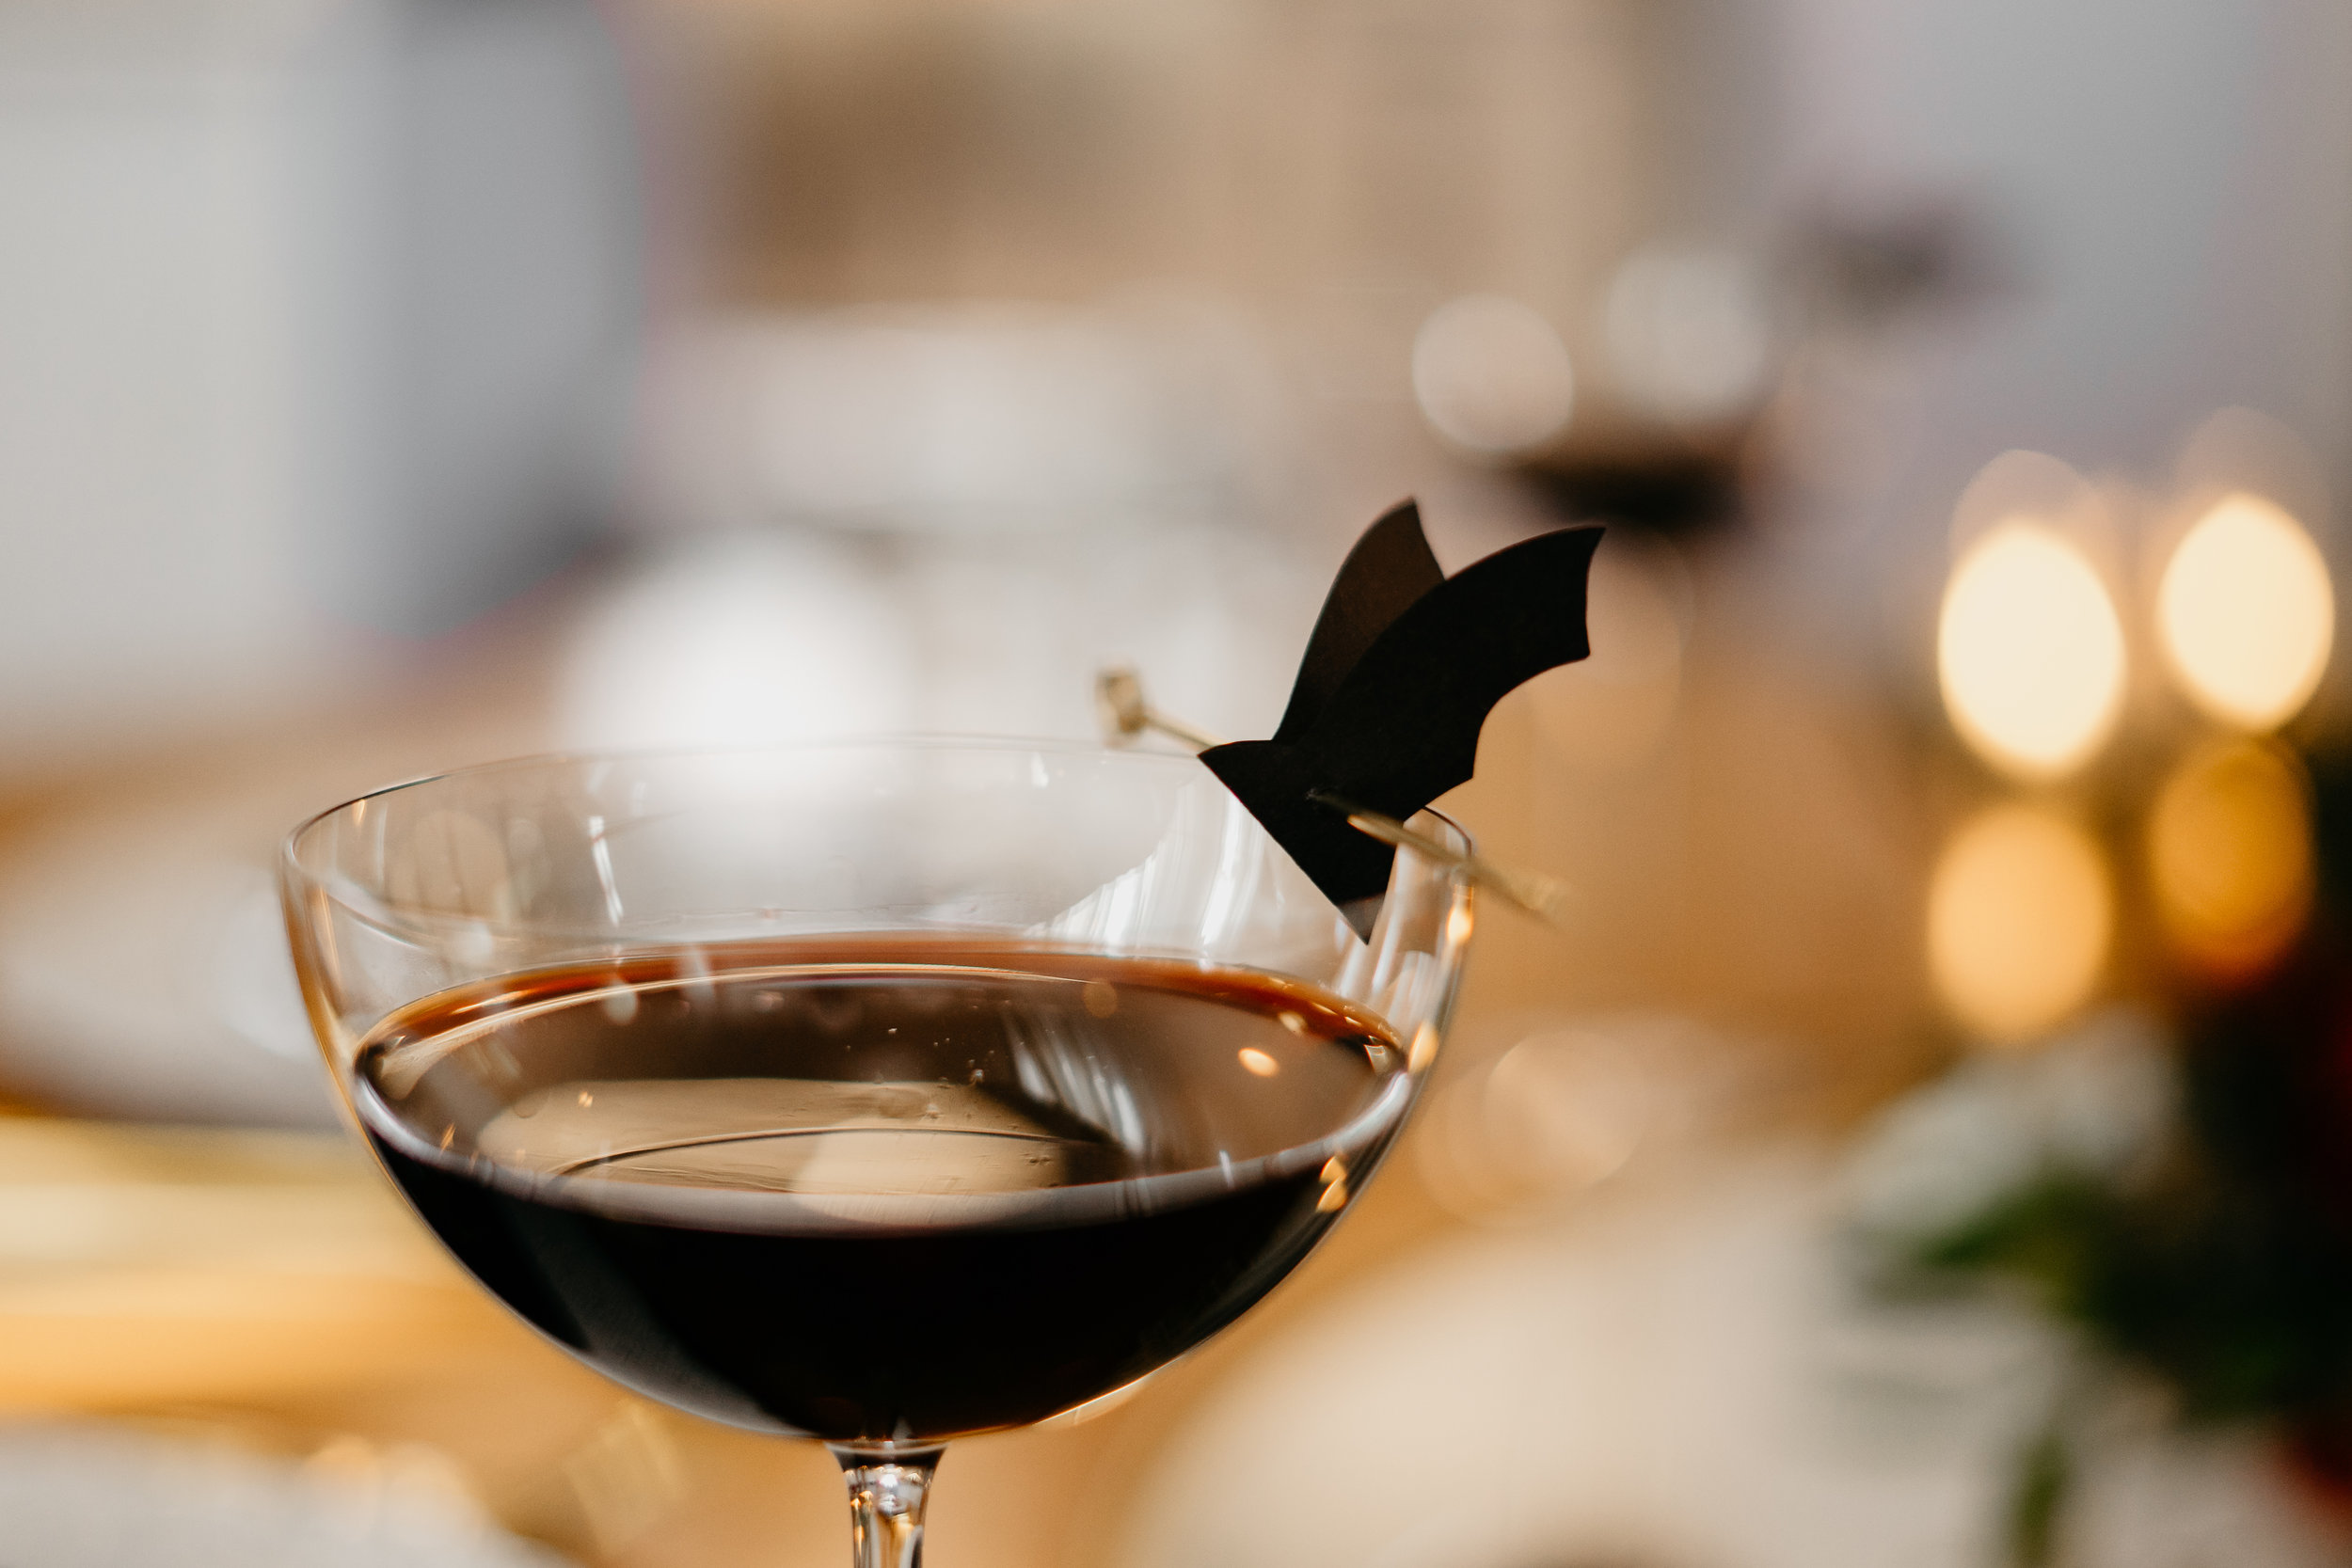 Up All Night - 1 oz. Coffee (or cold brew)1 oz. Red Wine1/2 oz. Vodka1/2 oz. Simple SyrupOptional: a few dashes of Sip Strongwater Amores - just to add a little more depth and character.Garnish: a sweet chocolate to eat or a paper bat!Chill coffee to room temperature. Mix all ingredients, pour into fun coupes or your favorite cocktail glass, and garnish. Easy peasy.